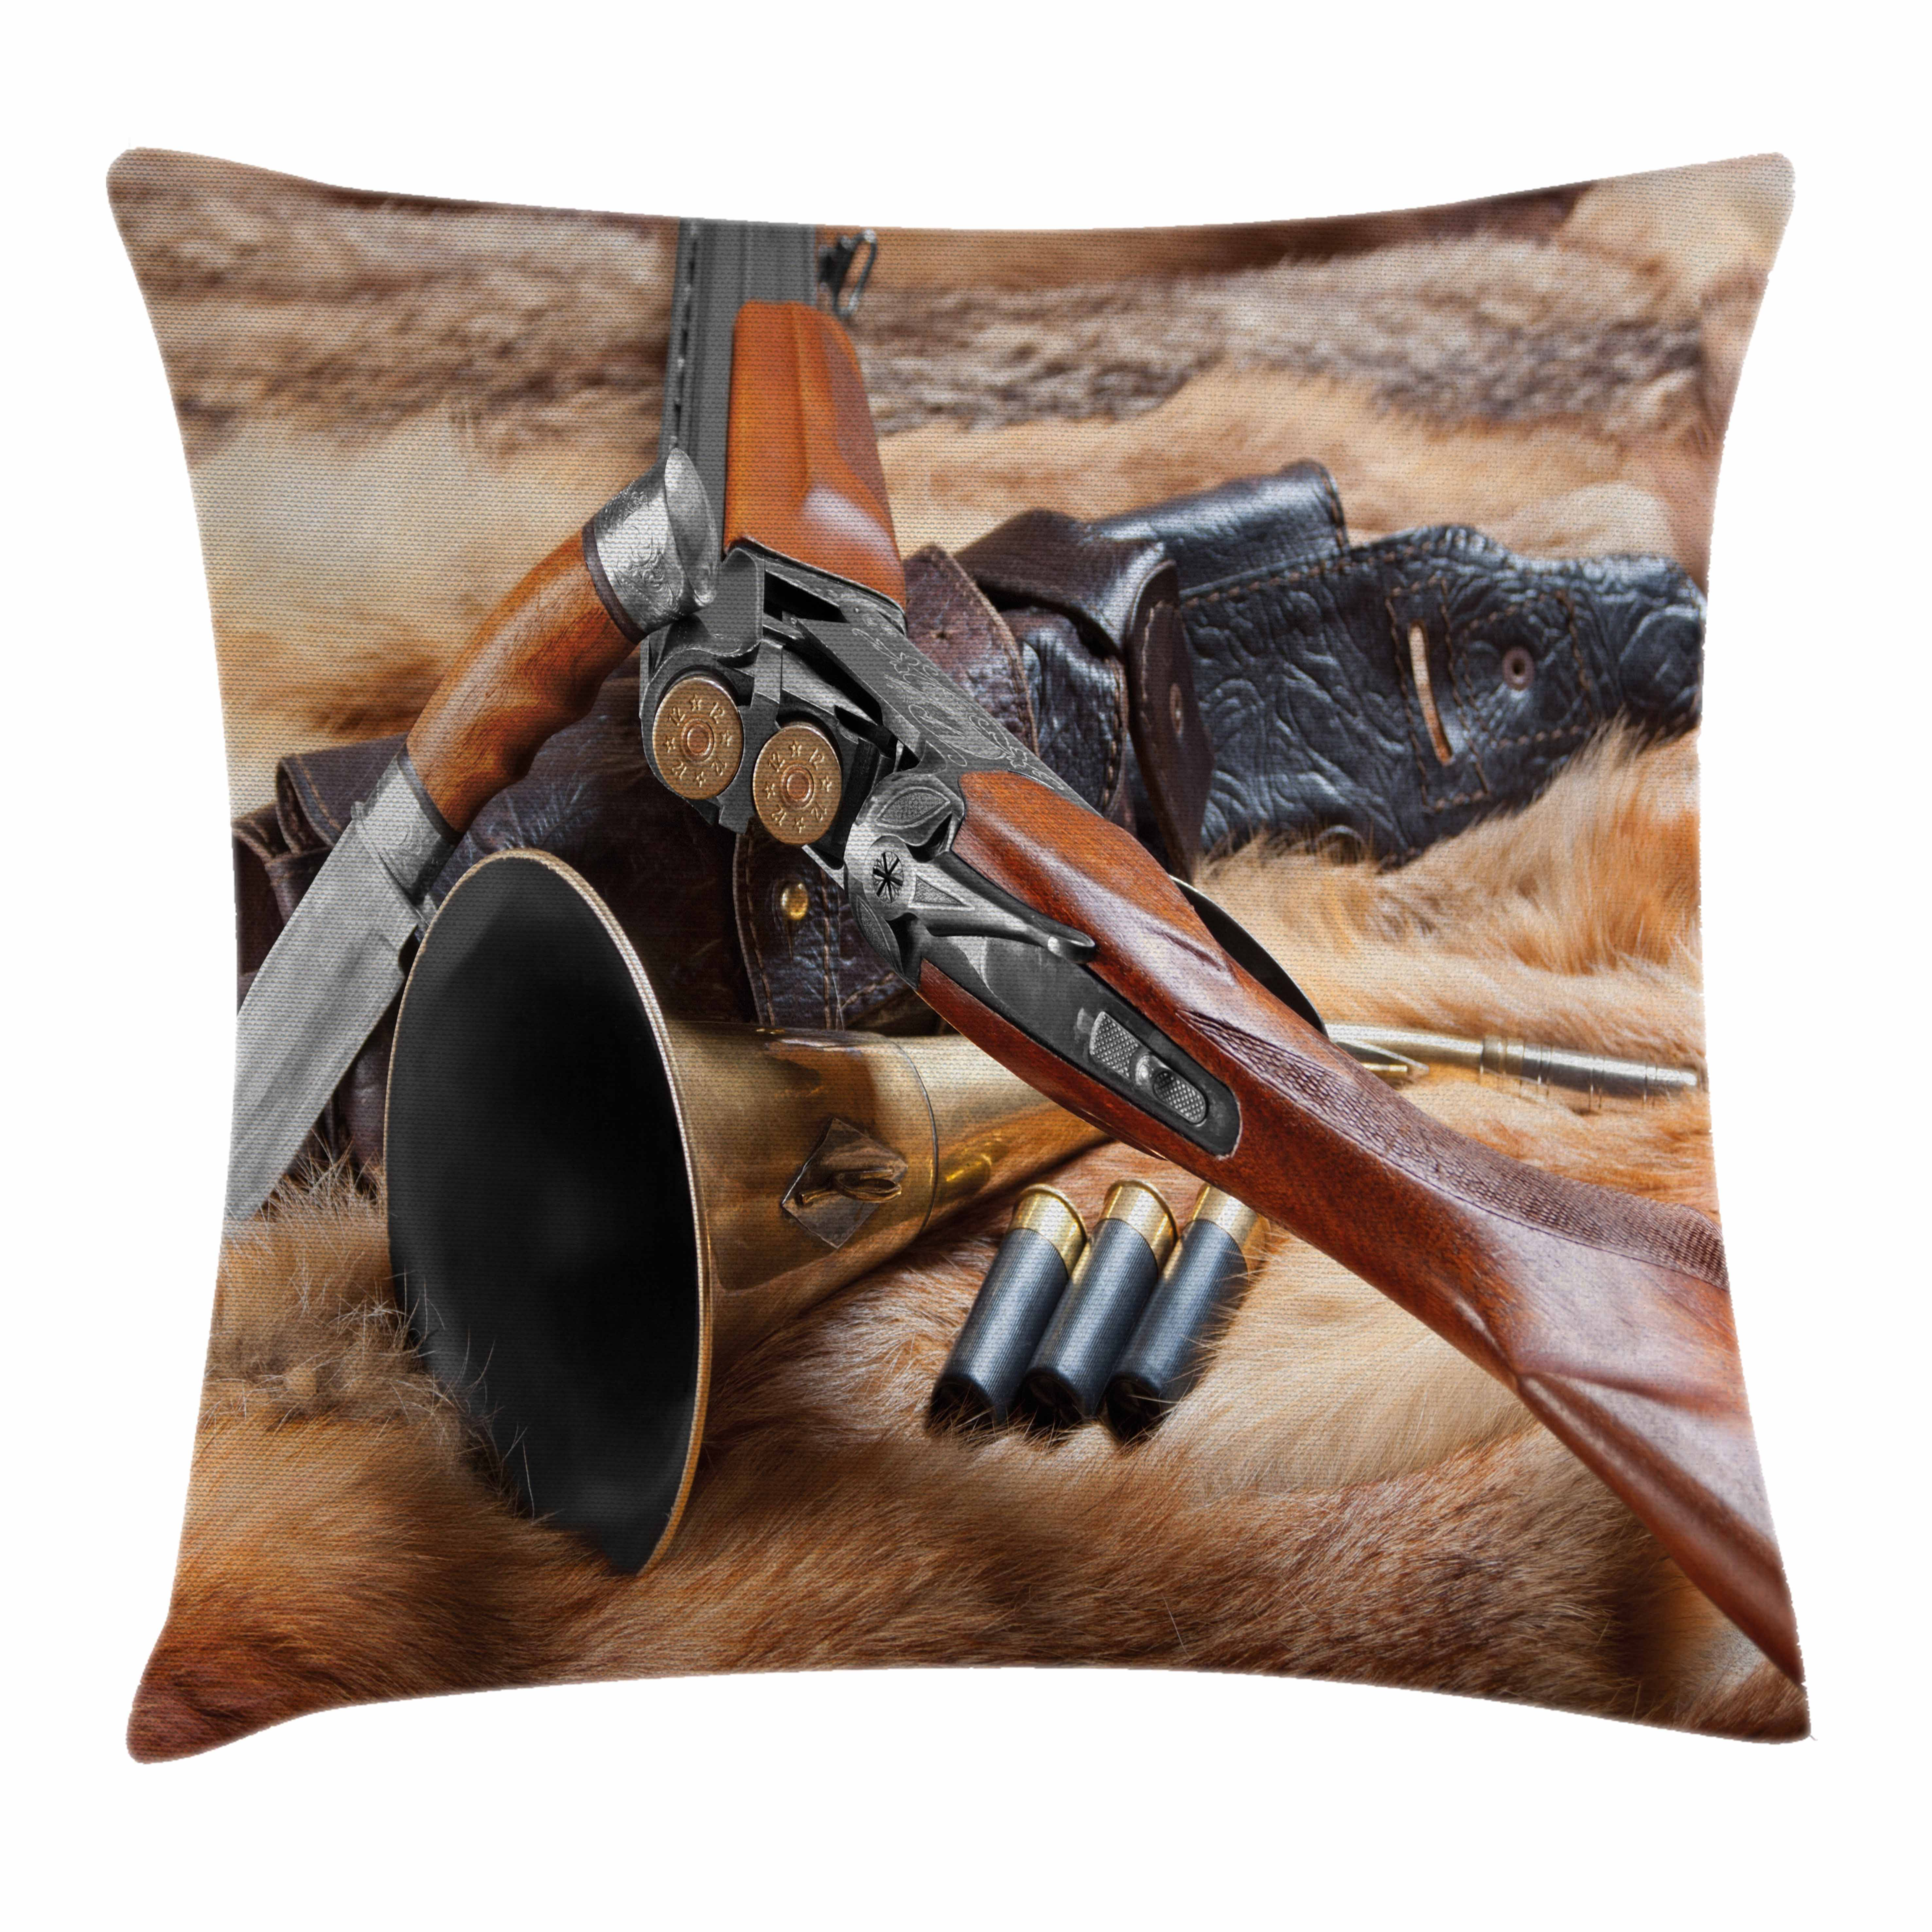 Hunting Decor Throw Pillow Cushion Cover, Hunting Materials on Fur Rifle Ammunition Cartridge Knife Sheath, Decorative Square Accent Pillow Case, 20 X 20 Inches, Brown Light Brown Black, by Ambesonne